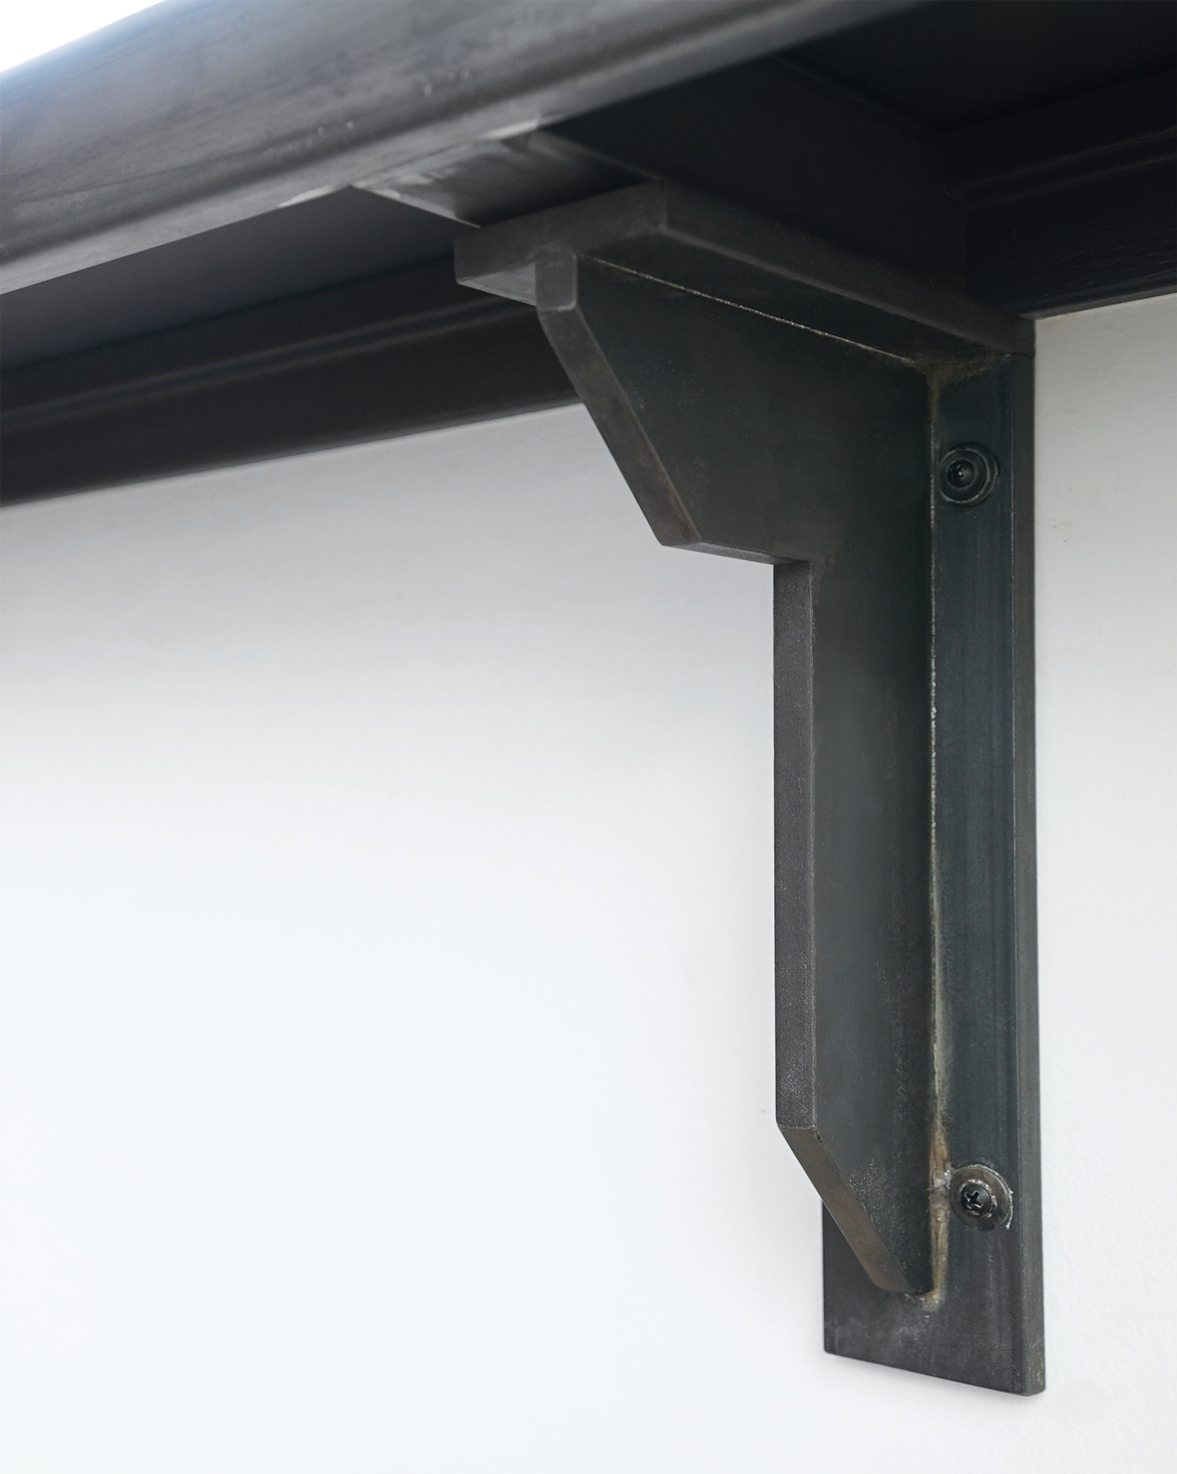 TamBrew-WindowCounterBracket.jpg